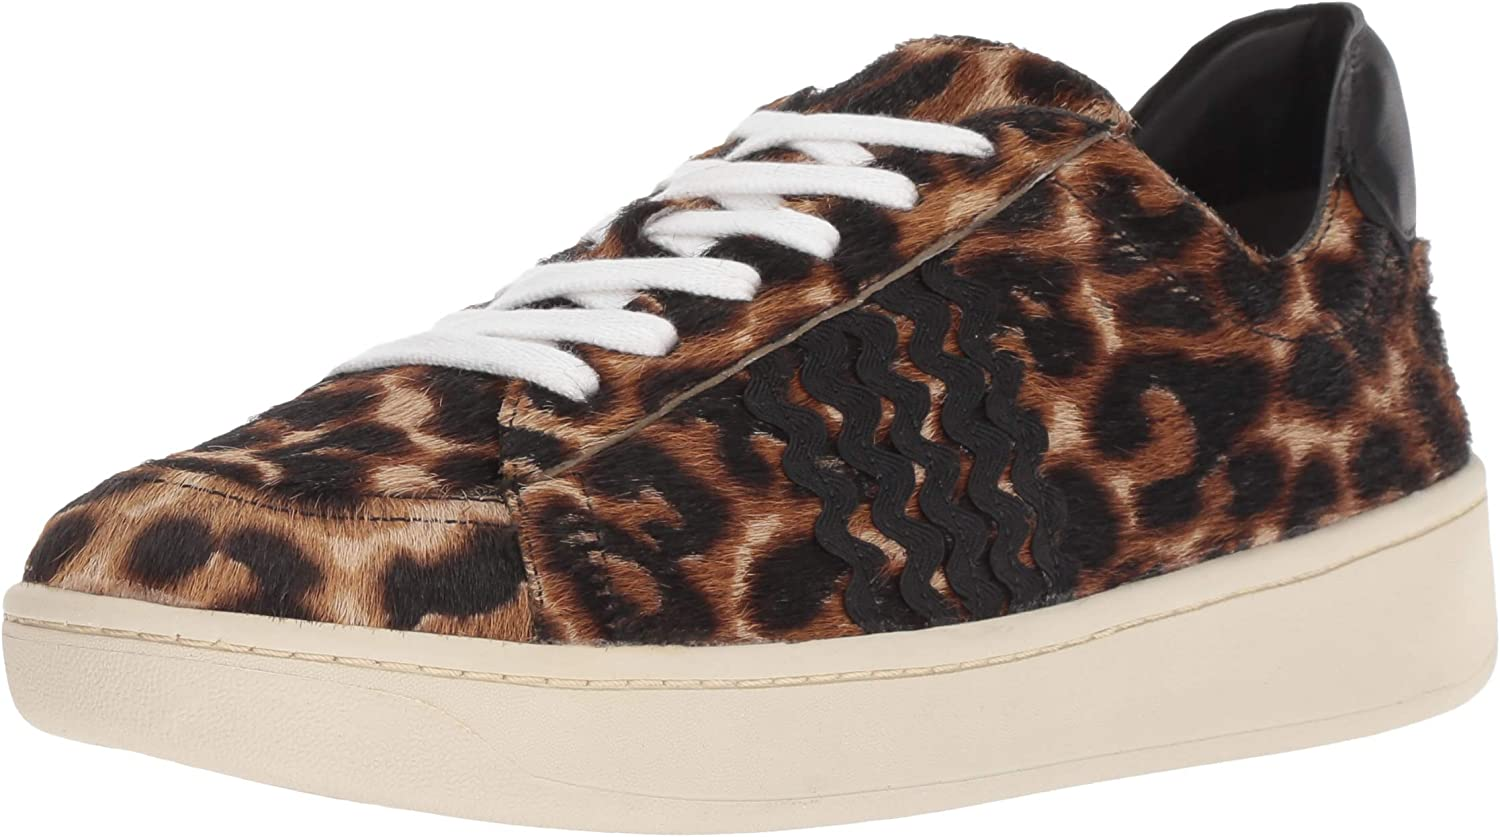 Loeffler Randall Women's Elliot Lace Up Sneaker with RIC Rac